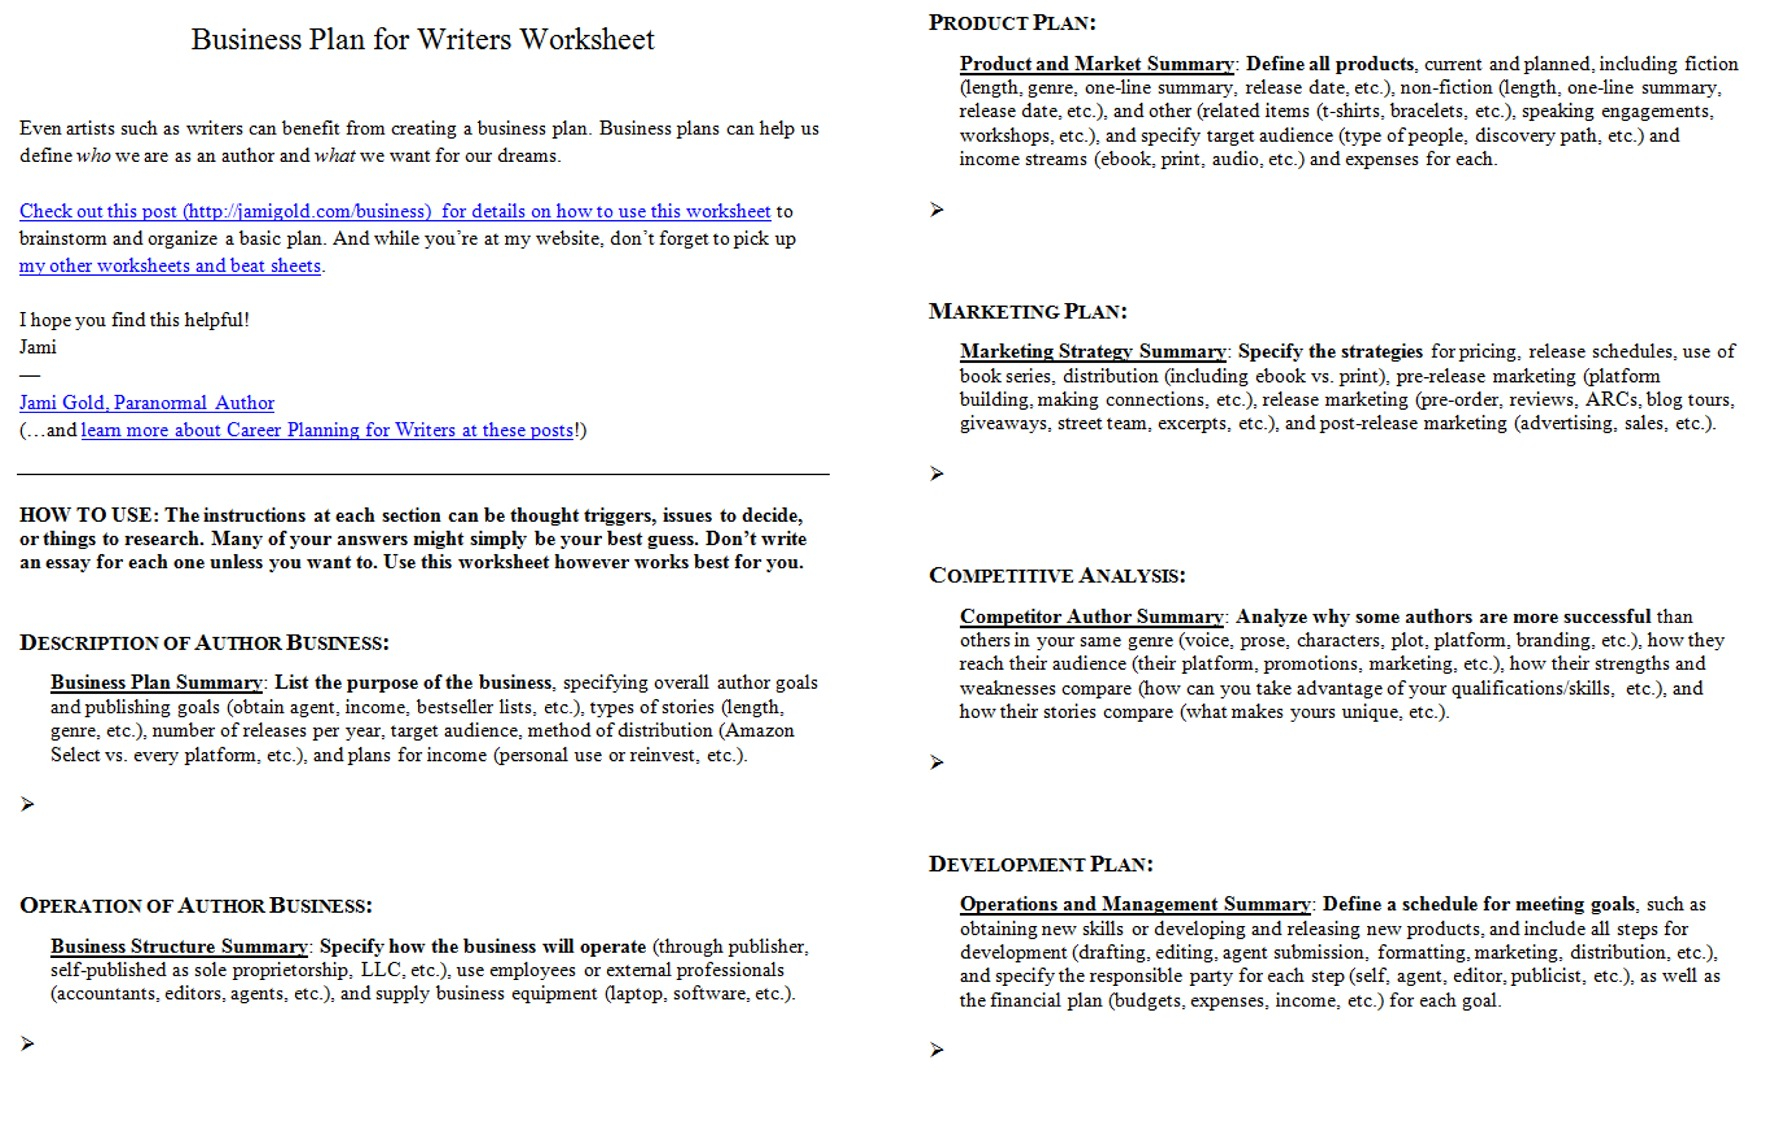 Weirdmailus  Pretty Worksheets For Writers  Jami Gold Paranormal Author With Inspiring Screen Shot Of Both Pages Of The Business Plan For Writers Worksheet With Astonishing Isolines Worksheet Also Integer Exponents Worksheets In Addition Multiple Worksheet And Simile Worksheets Th Grade As Well As Free Adjectives Worksheets Additionally Place Value Worksheets Nd Grade Printable From Jamigoldcom With Weirdmailus  Inspiring Worksheets For Writers  Jami Gold Paranormal Author With Astonishing Screen Shot Of Both Pages Of The Business Plan For Writers Worksheet And Pretty Isolines Worksheet Also Integer Exponents Worksheets In Addition Multiple Worksheet From Jamigoldcom